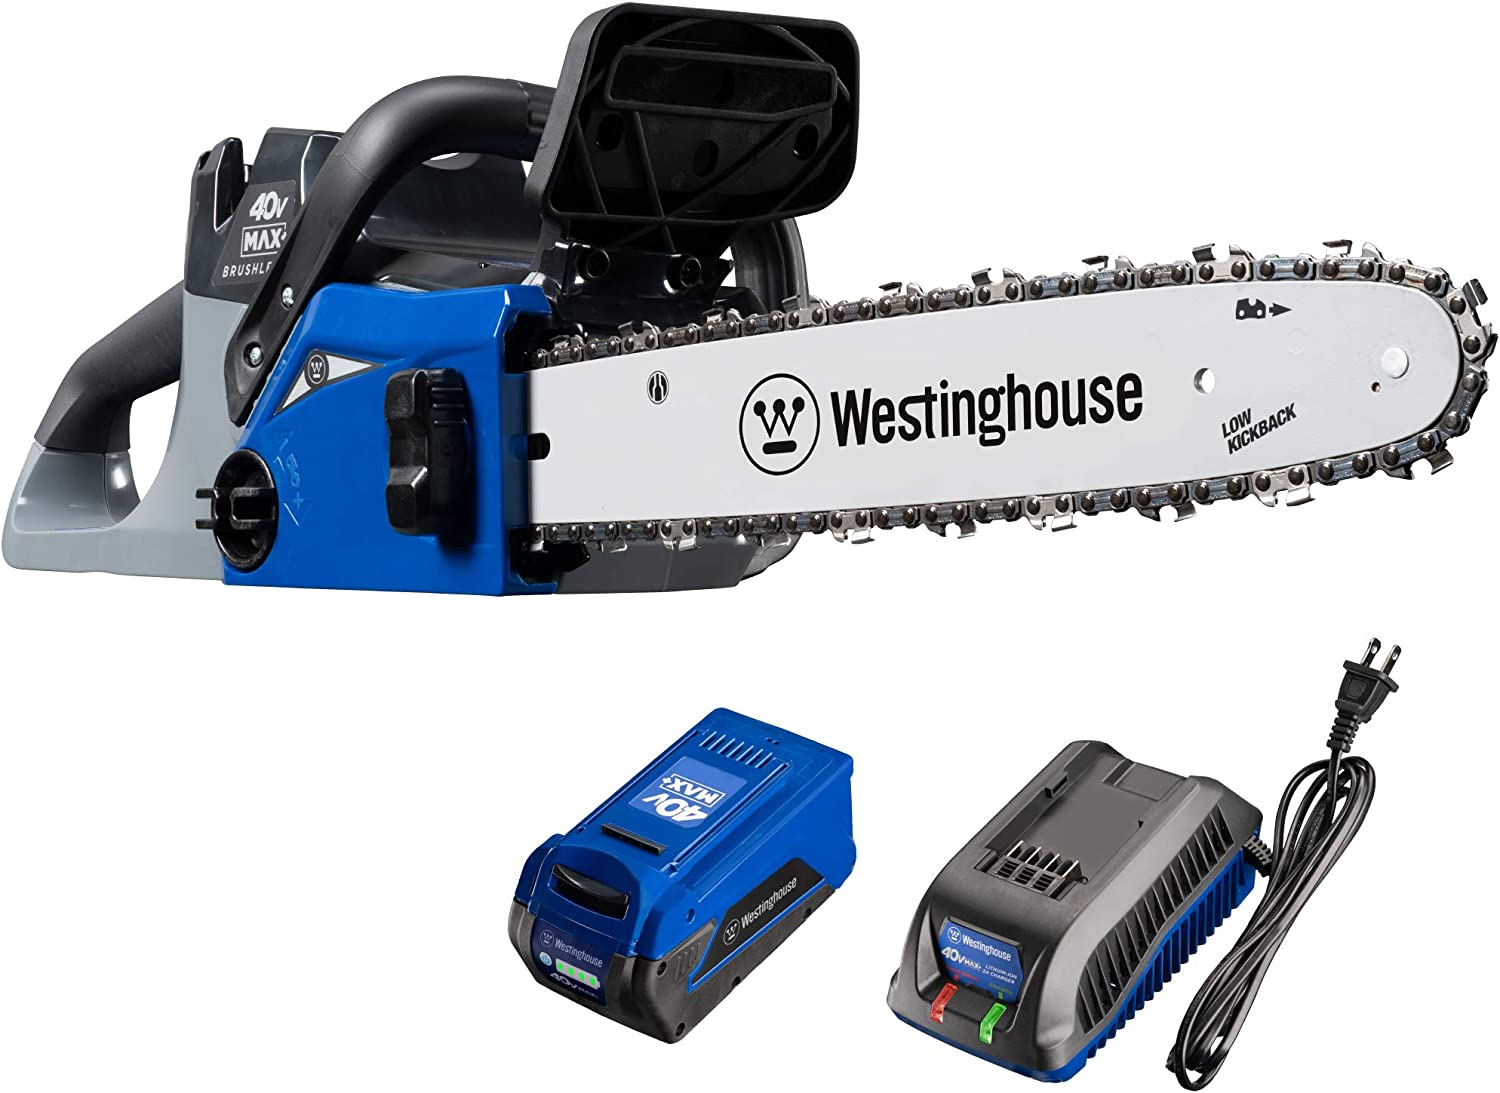 Westinghouse 40V Cordless Chainsaw, 4.0 Ah Battery and Charger Included